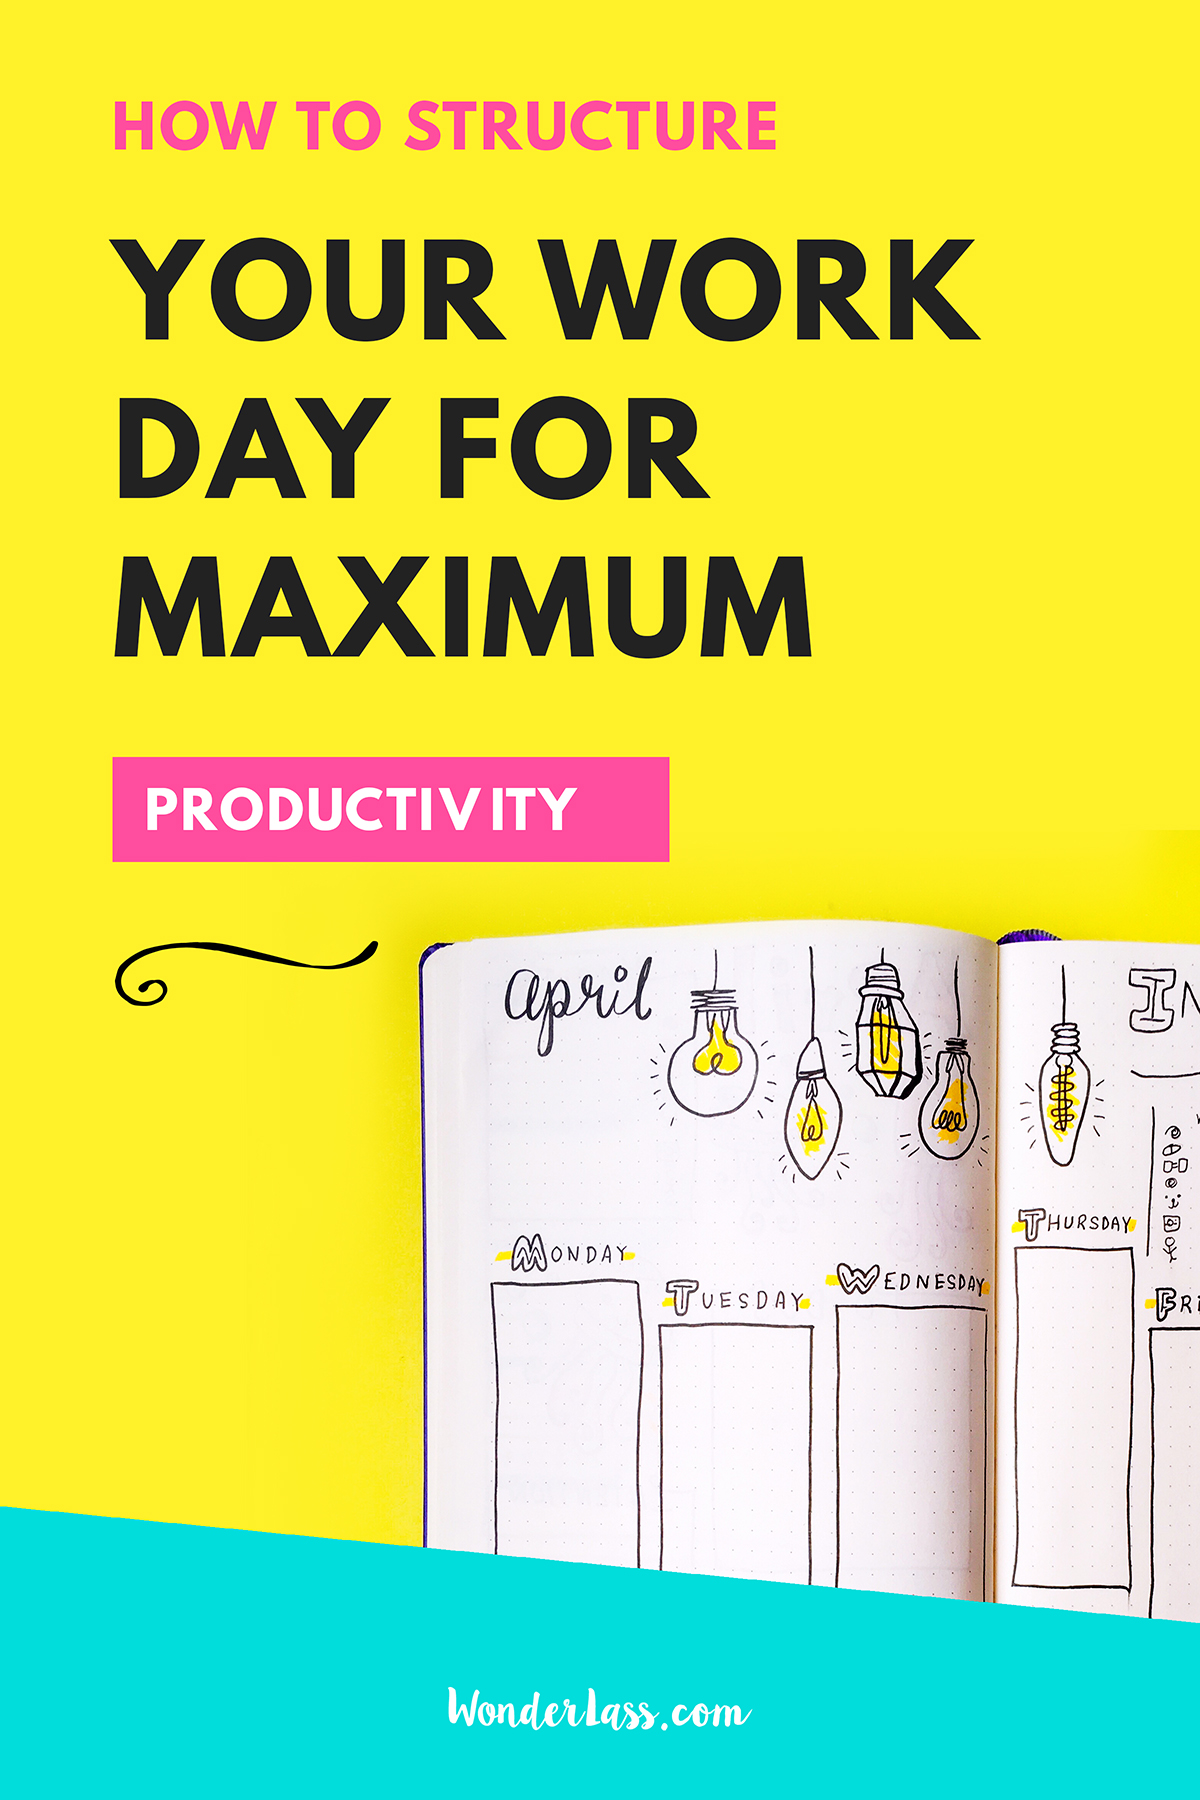 how to structure your work day to be more productive.jpg